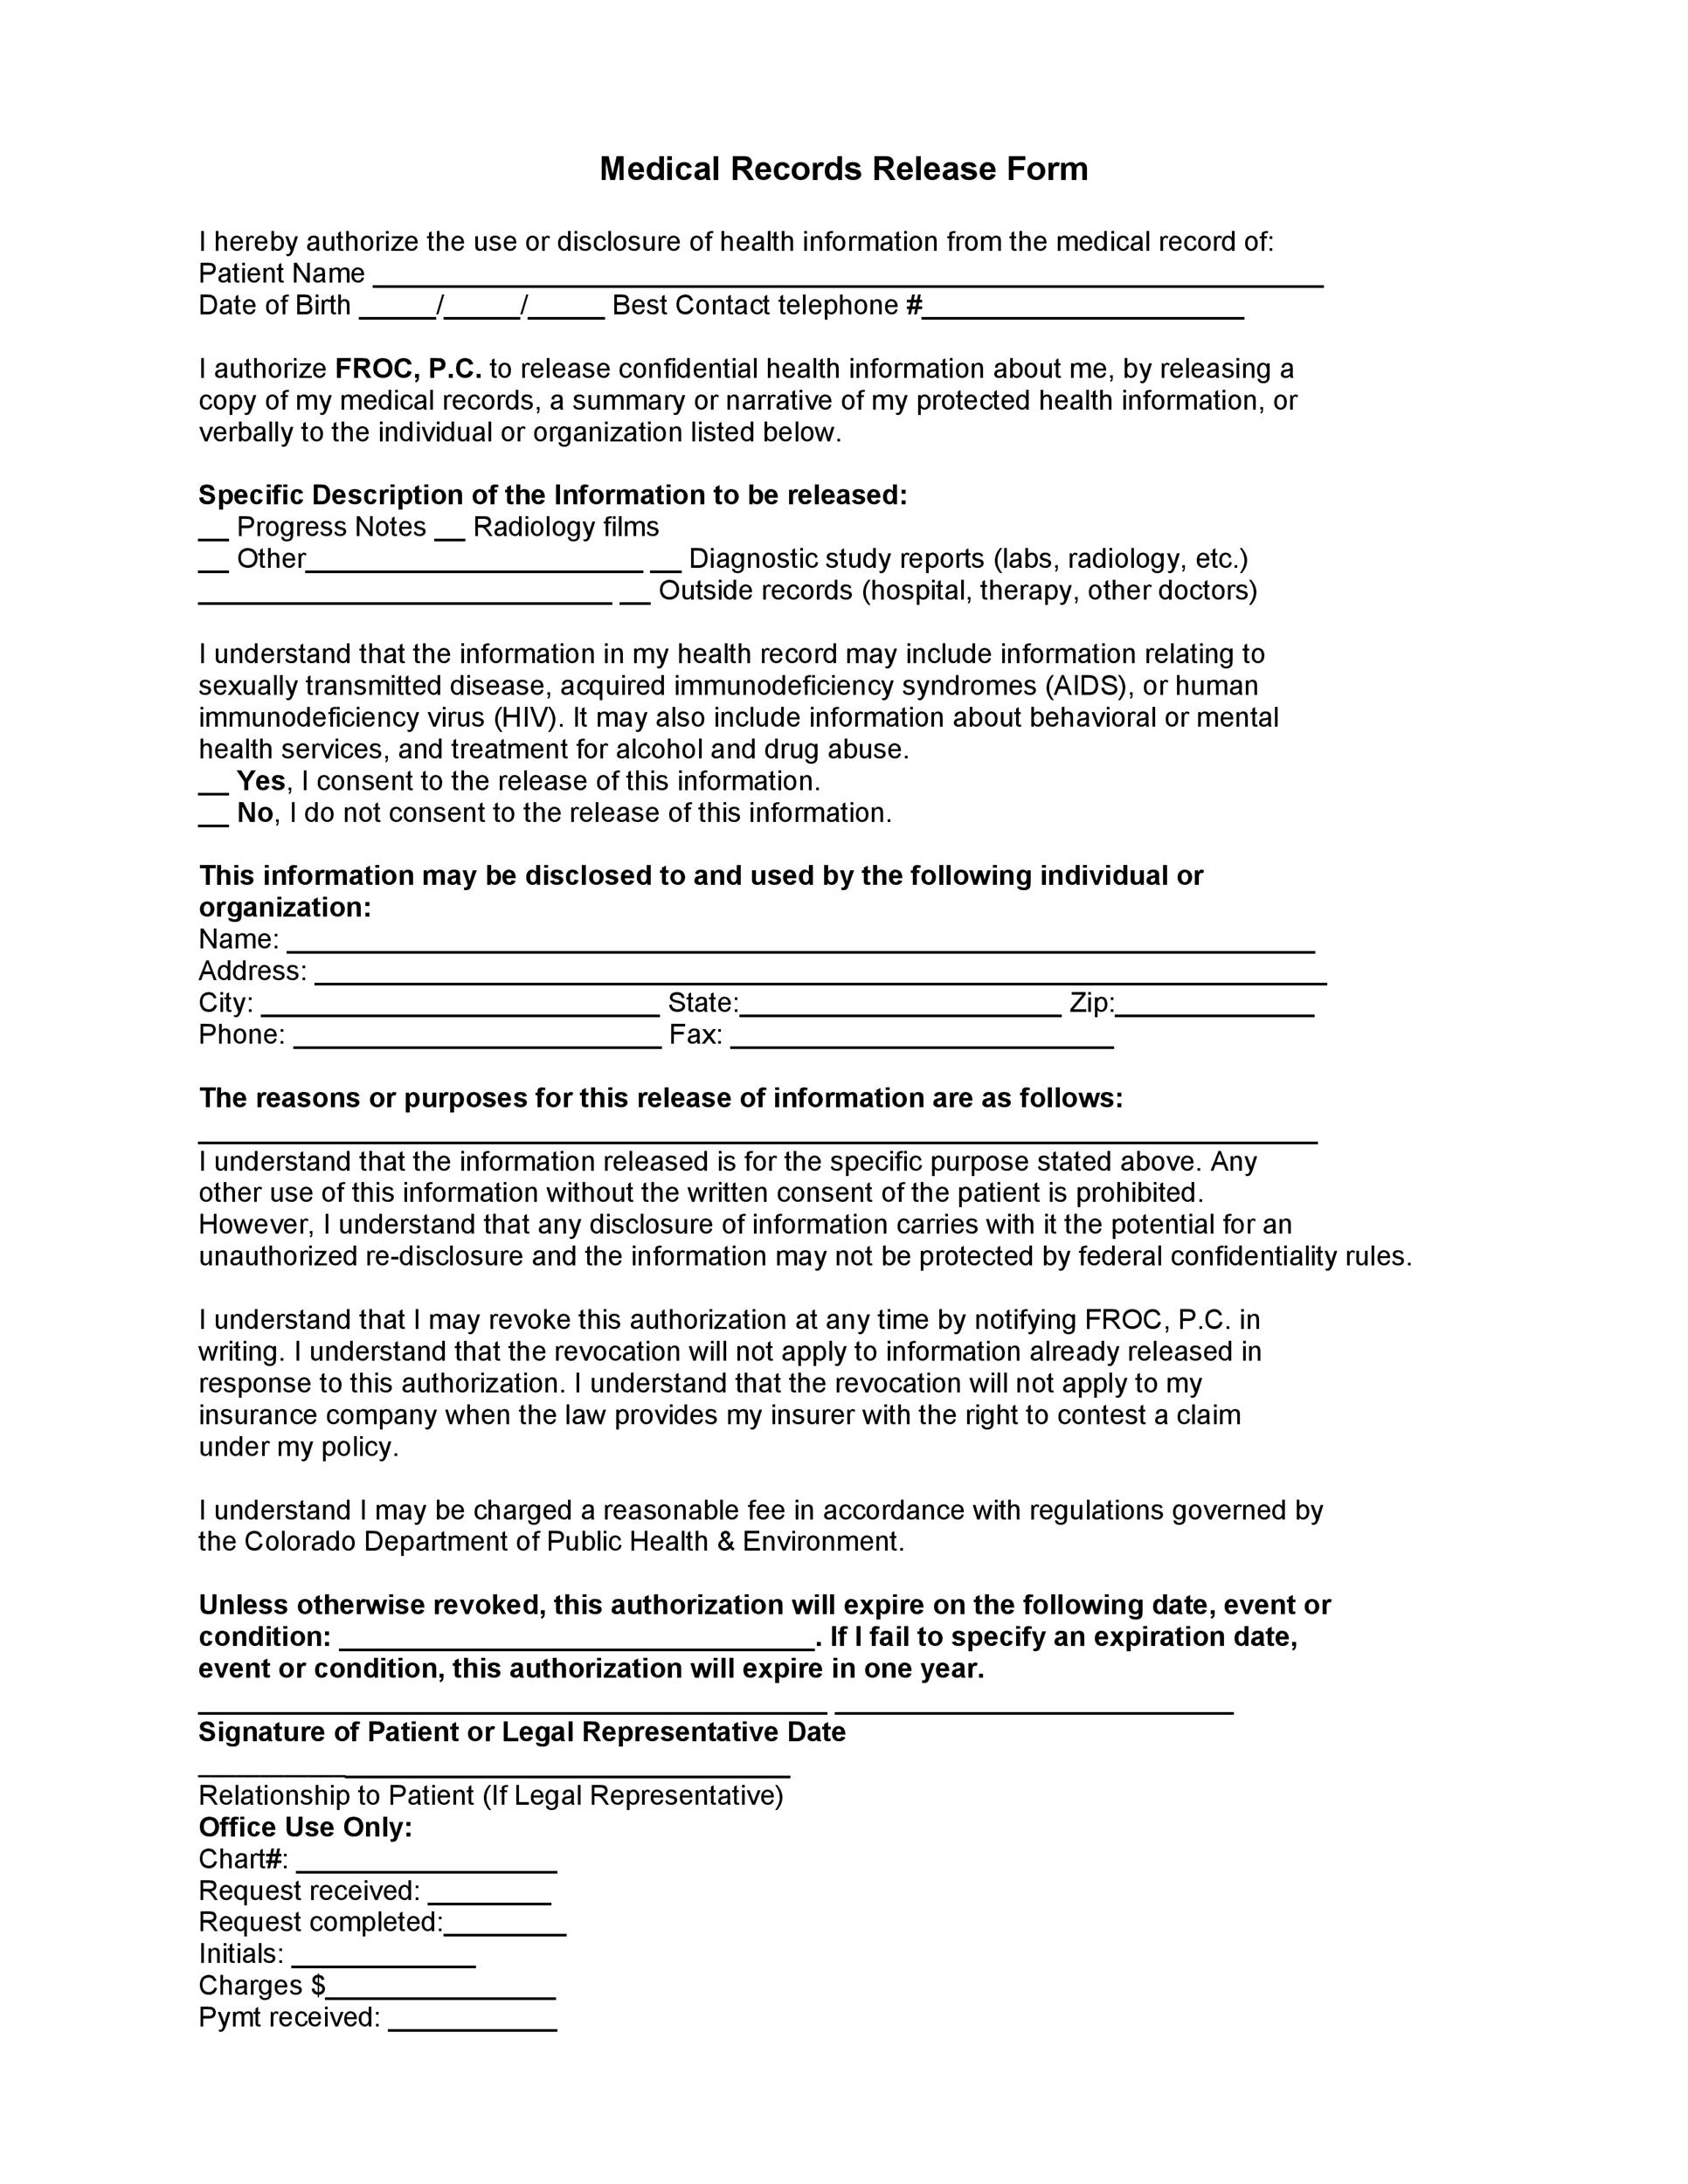 Sample Medical Records Release Form North Carolina Medical - sample medical records release form